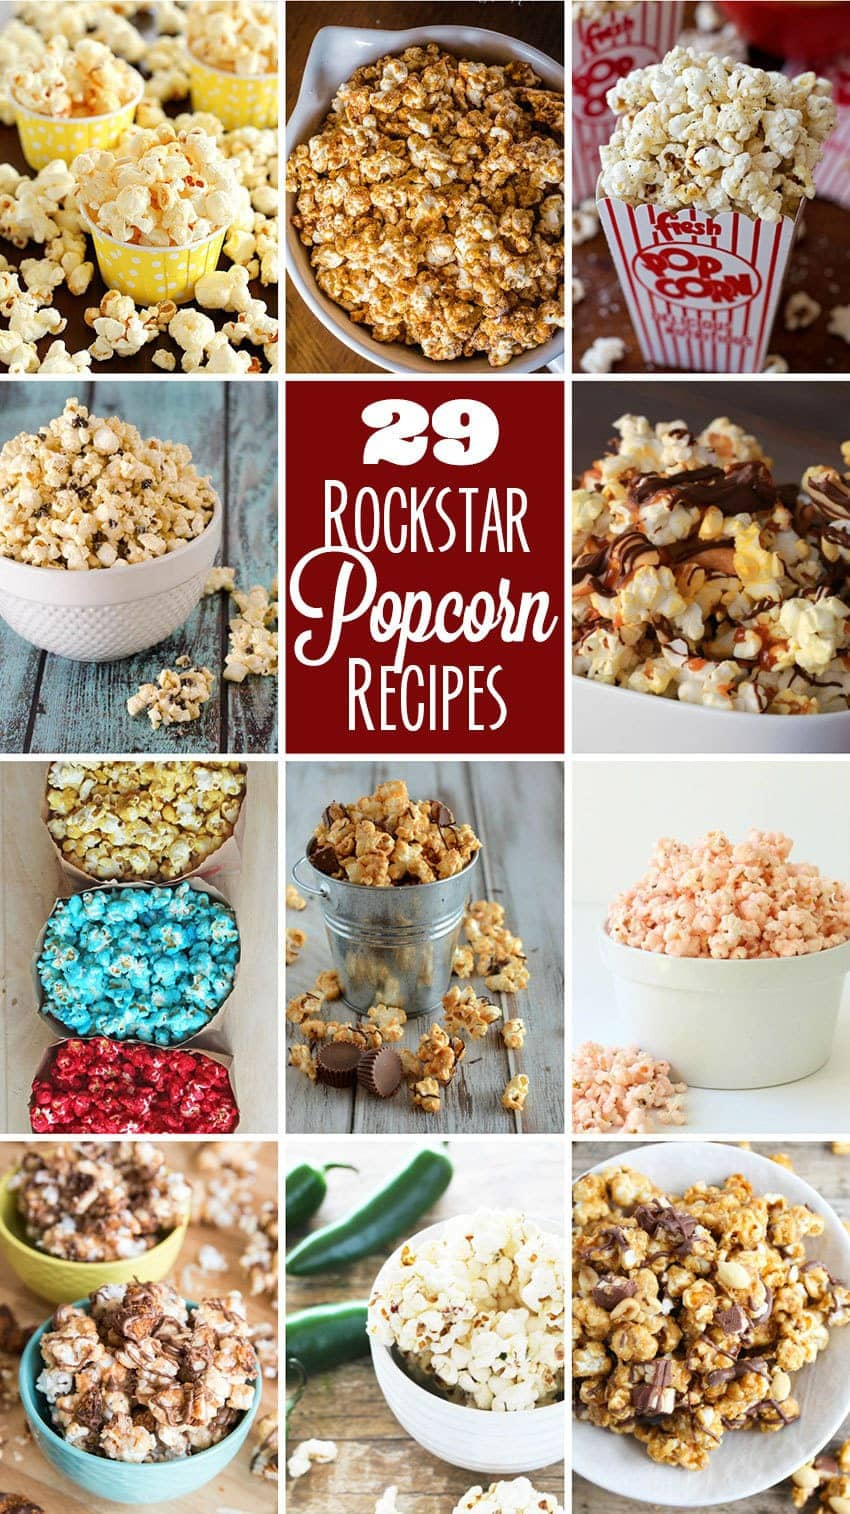 Rockstar Popcorn Recipes - Butter With A Side of Bread